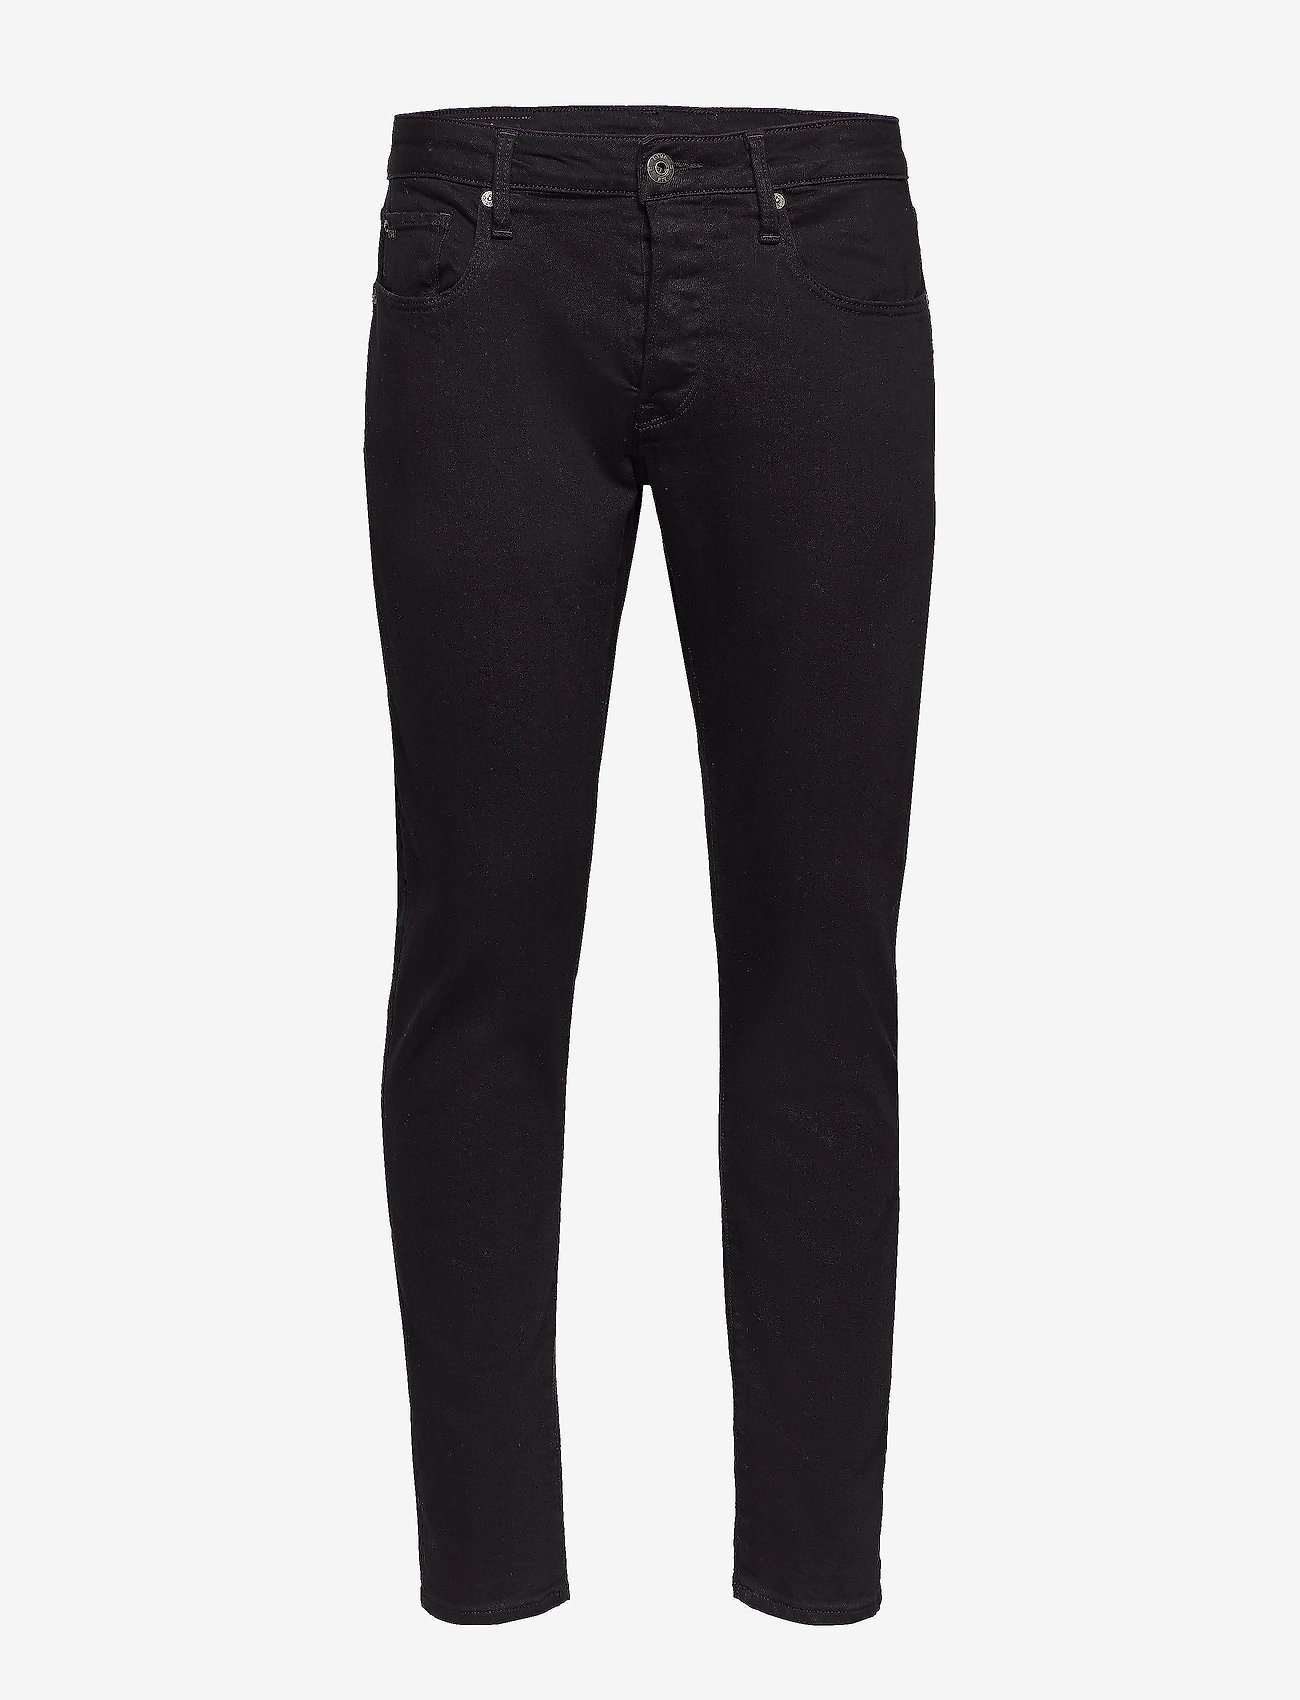 G-star RAW - 3301 Slim - slim jeans - pitch black - 0